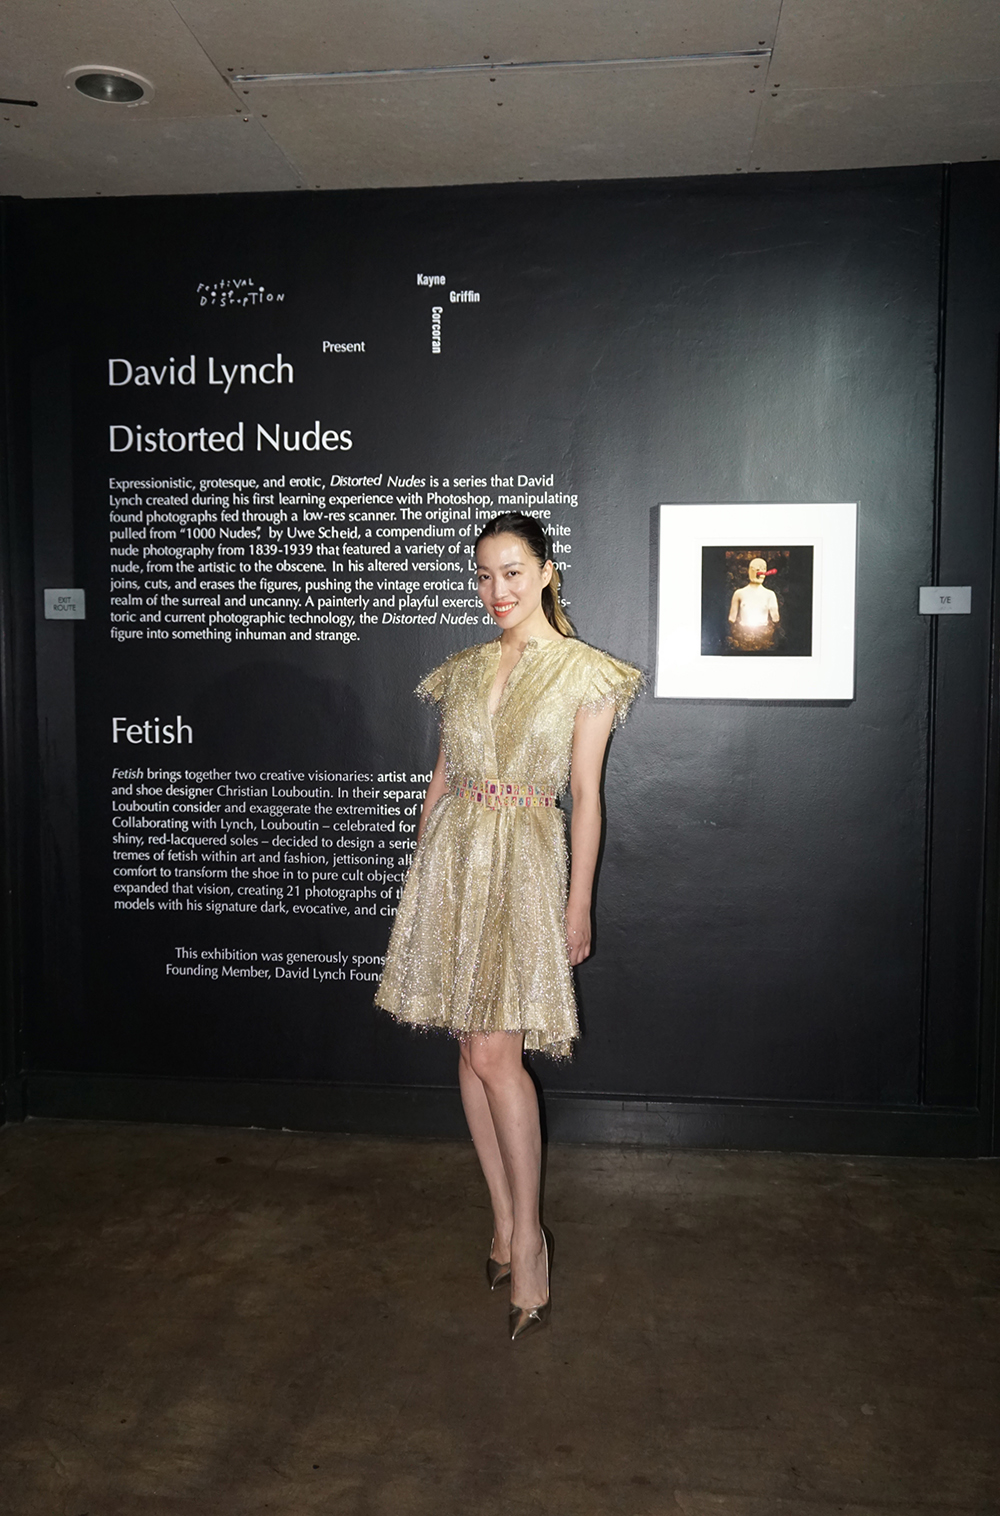 Yi Zhou at the David Lynch X Christian Louboutin Exhibition the Eye of the Dream. Wearing Chanel and Stuart Weitzman - © intothesunentertainment